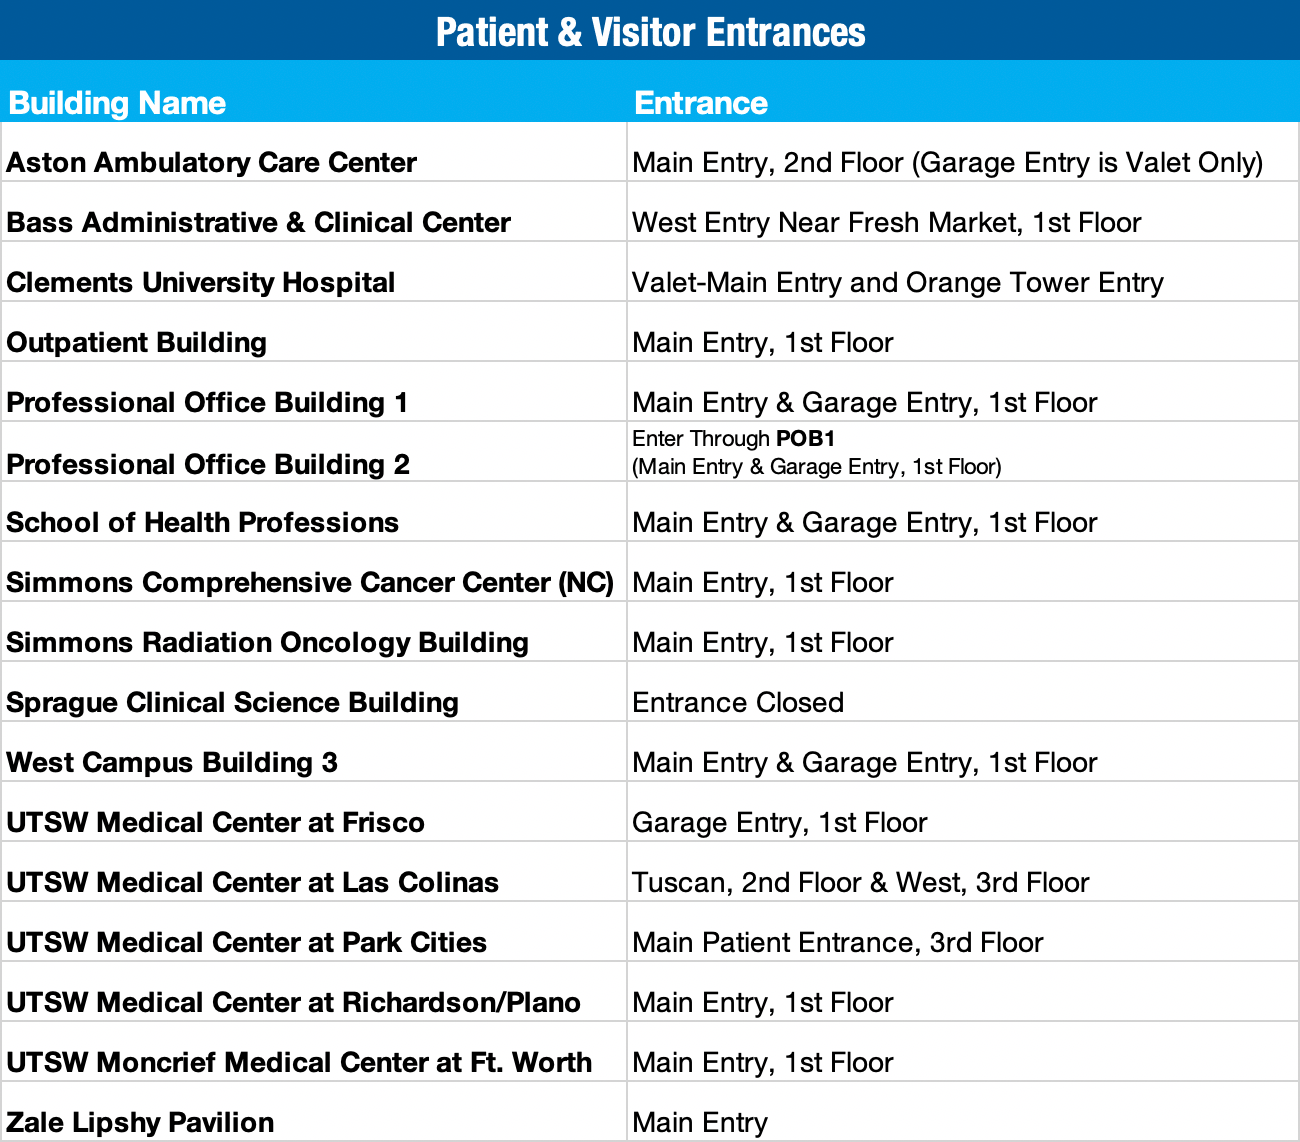 Patient access points for other UTSW buildings and clinics